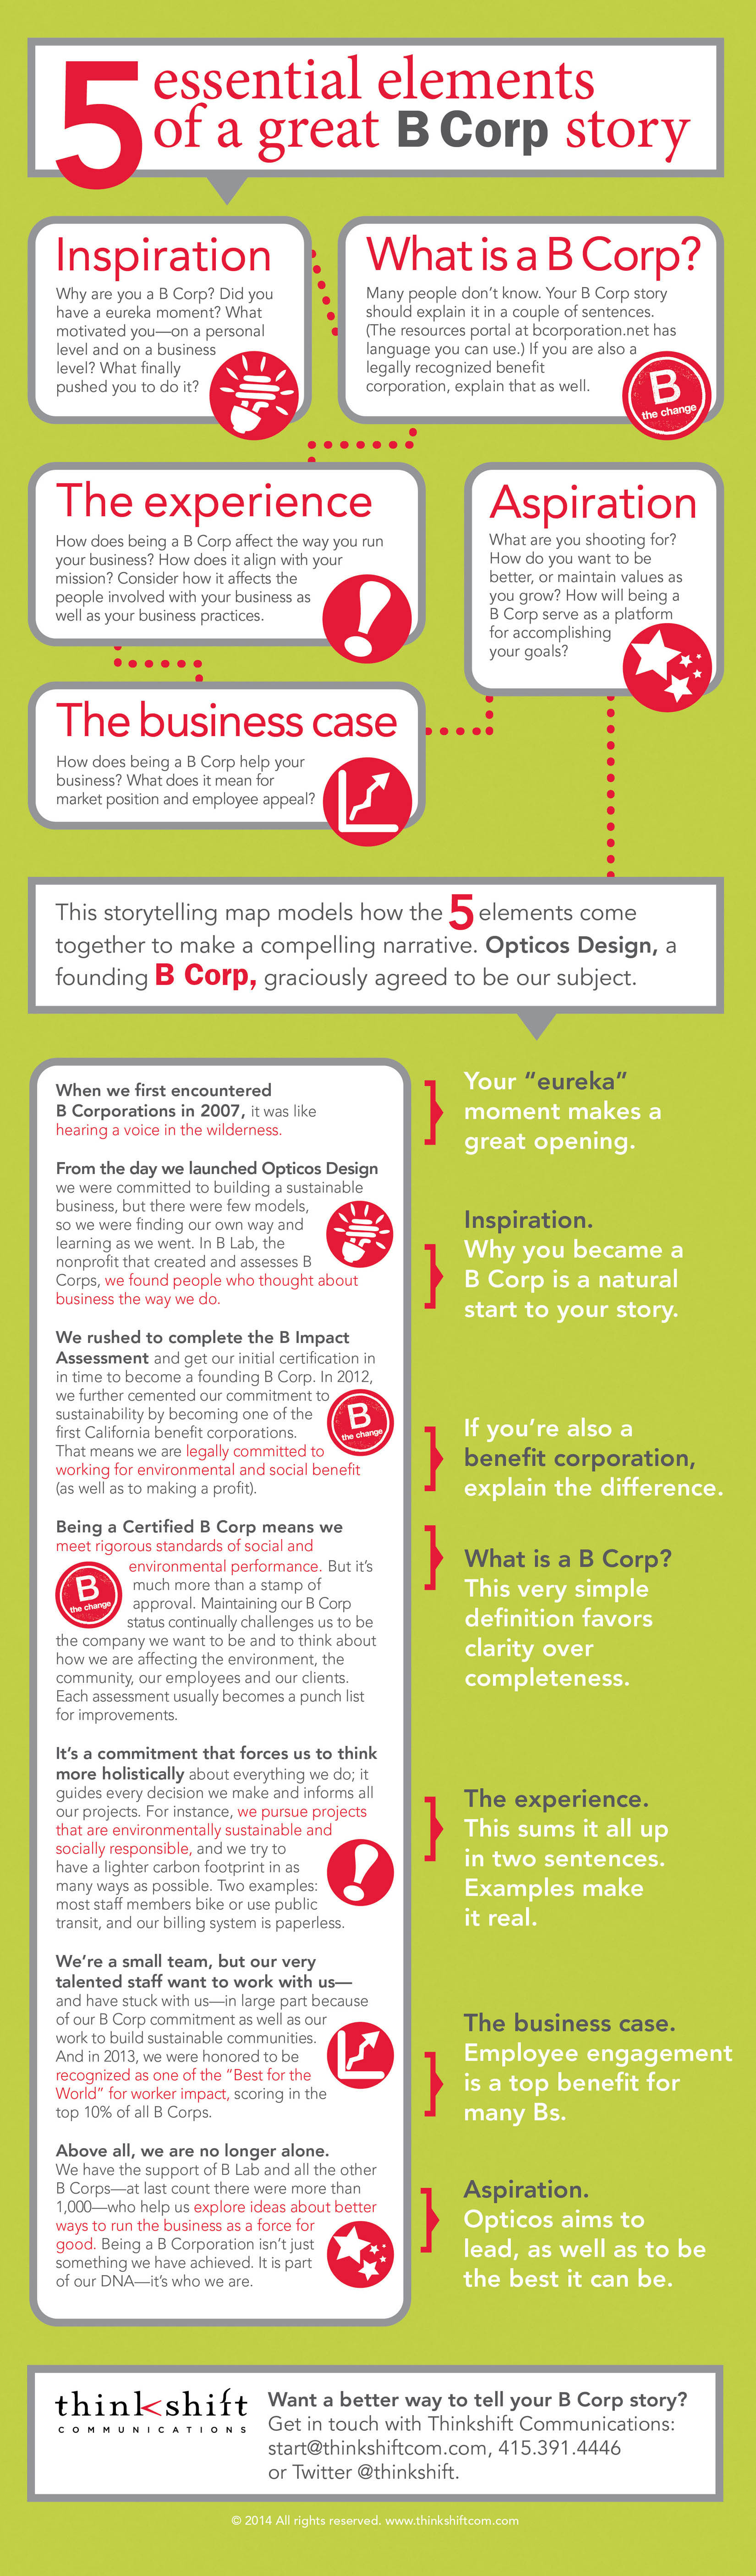 5 essential elements of a great B Corp story - Thinkshift